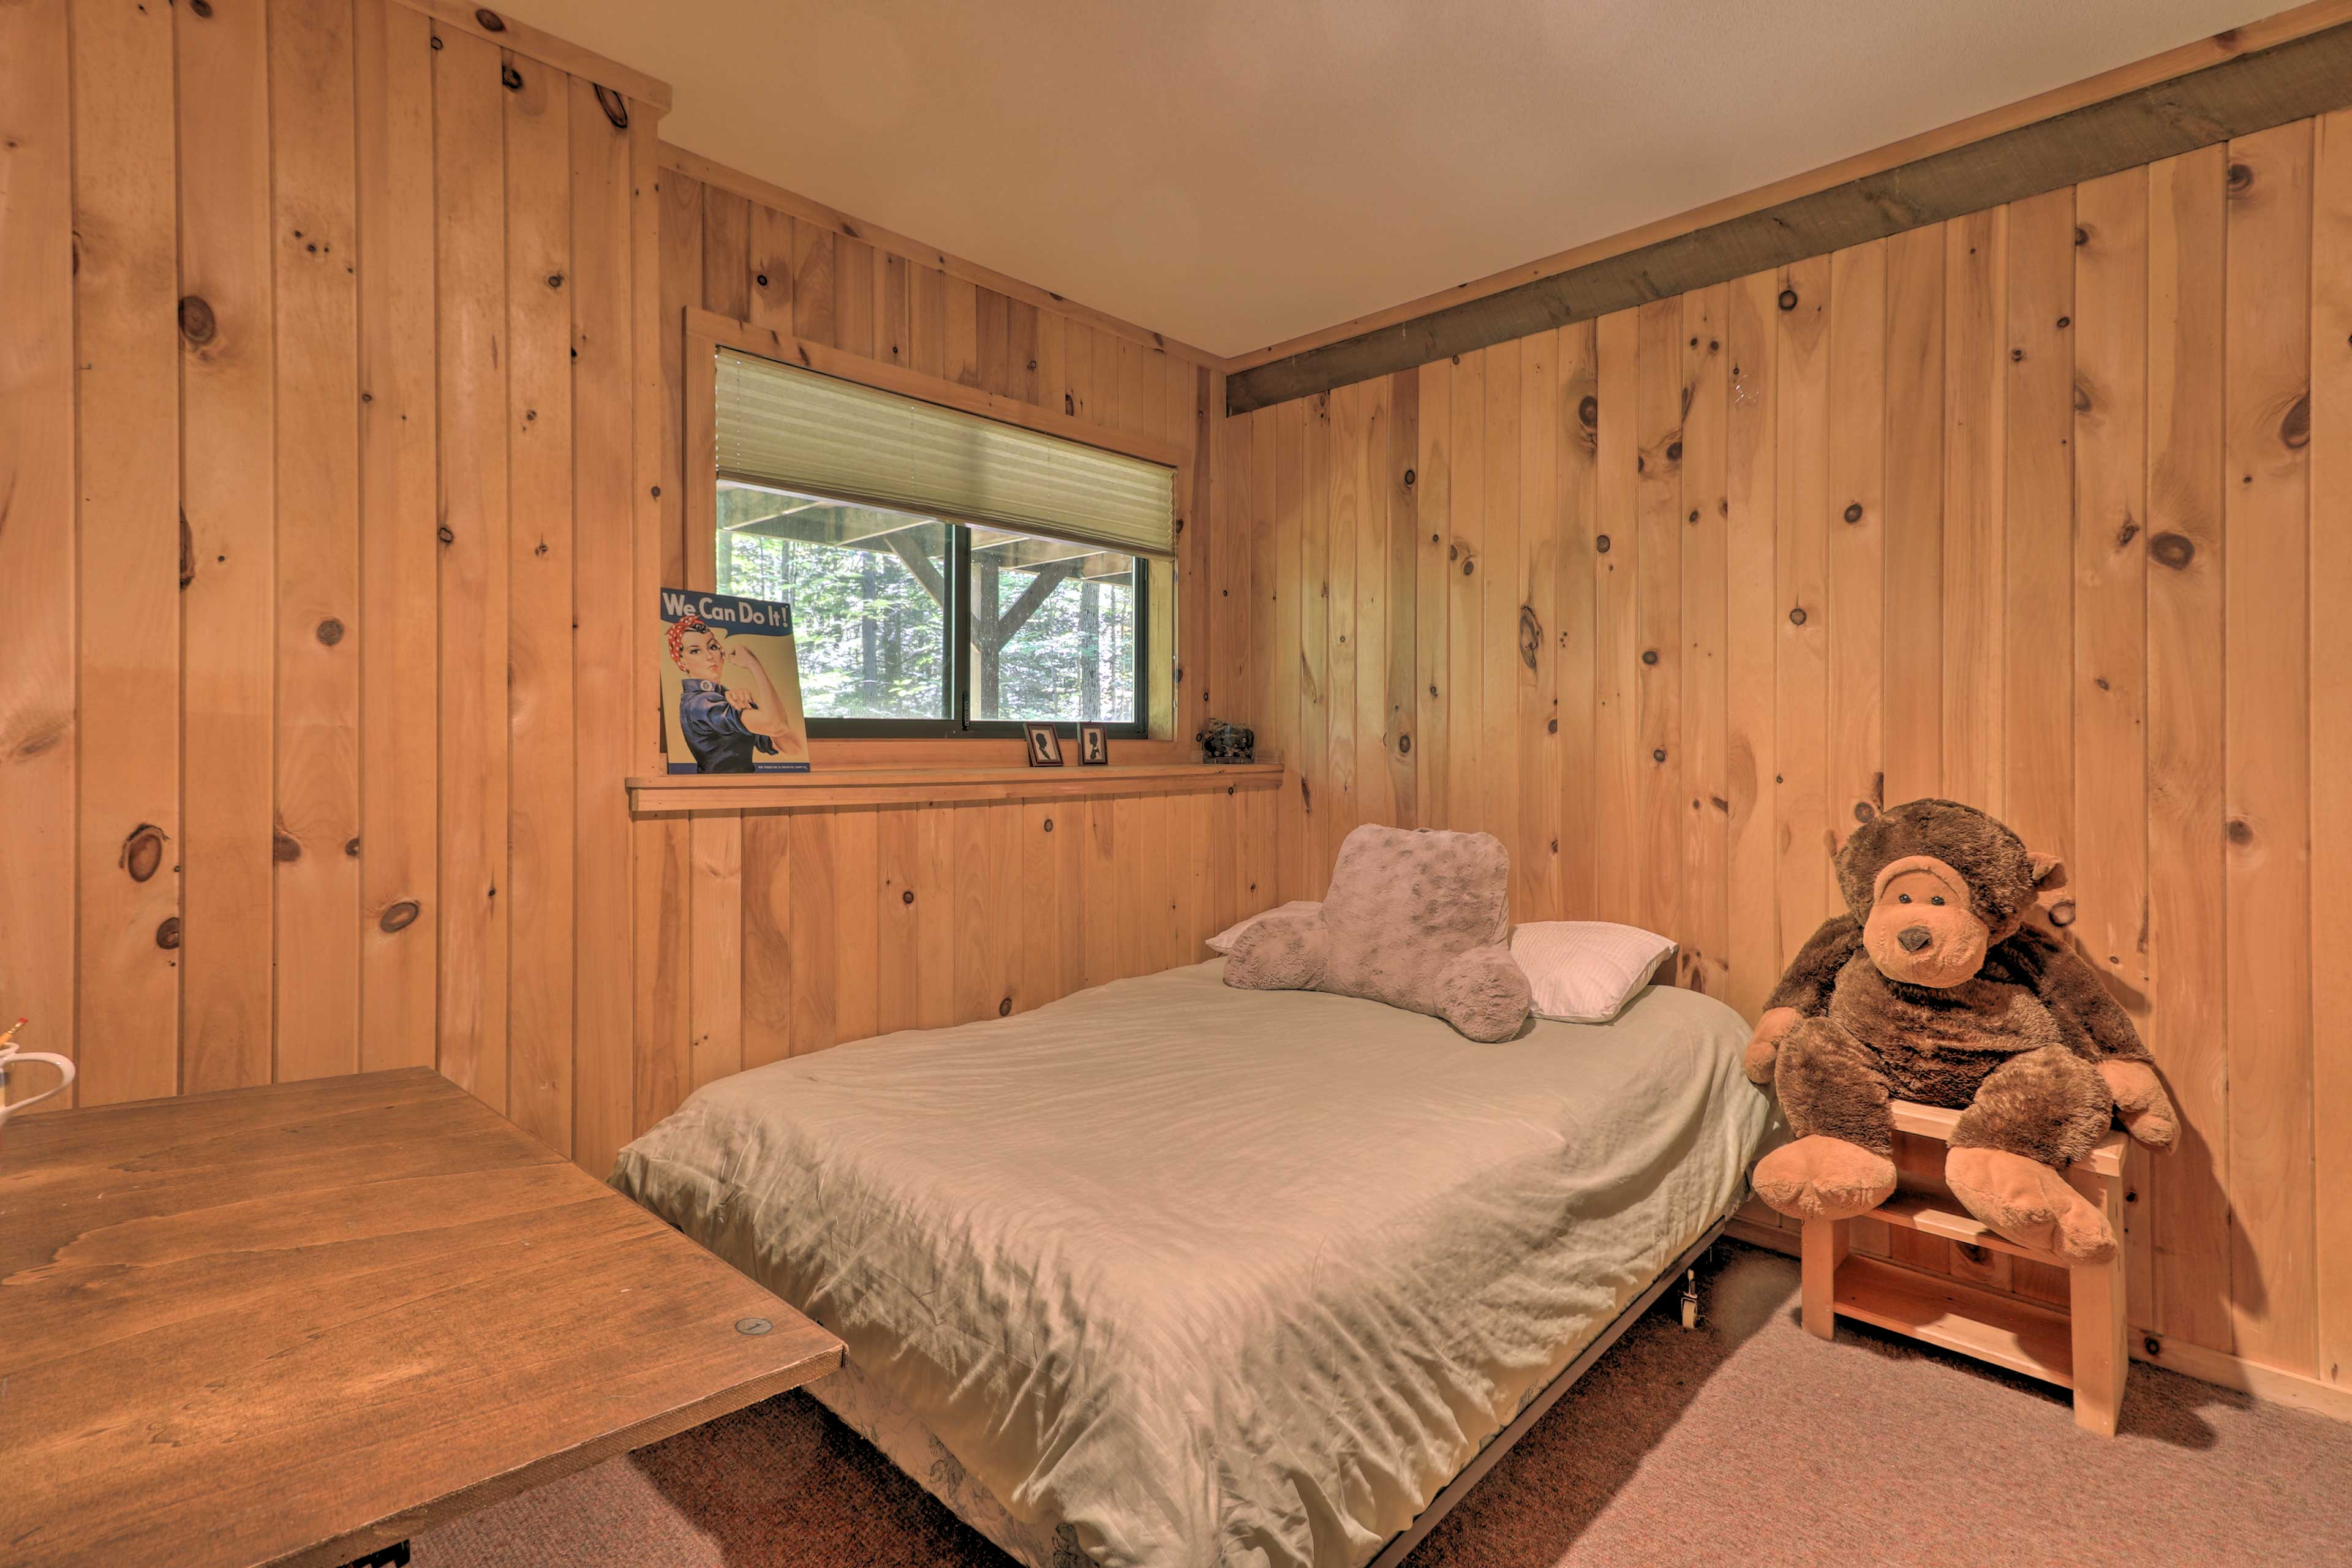 This room features a full-sized bed.